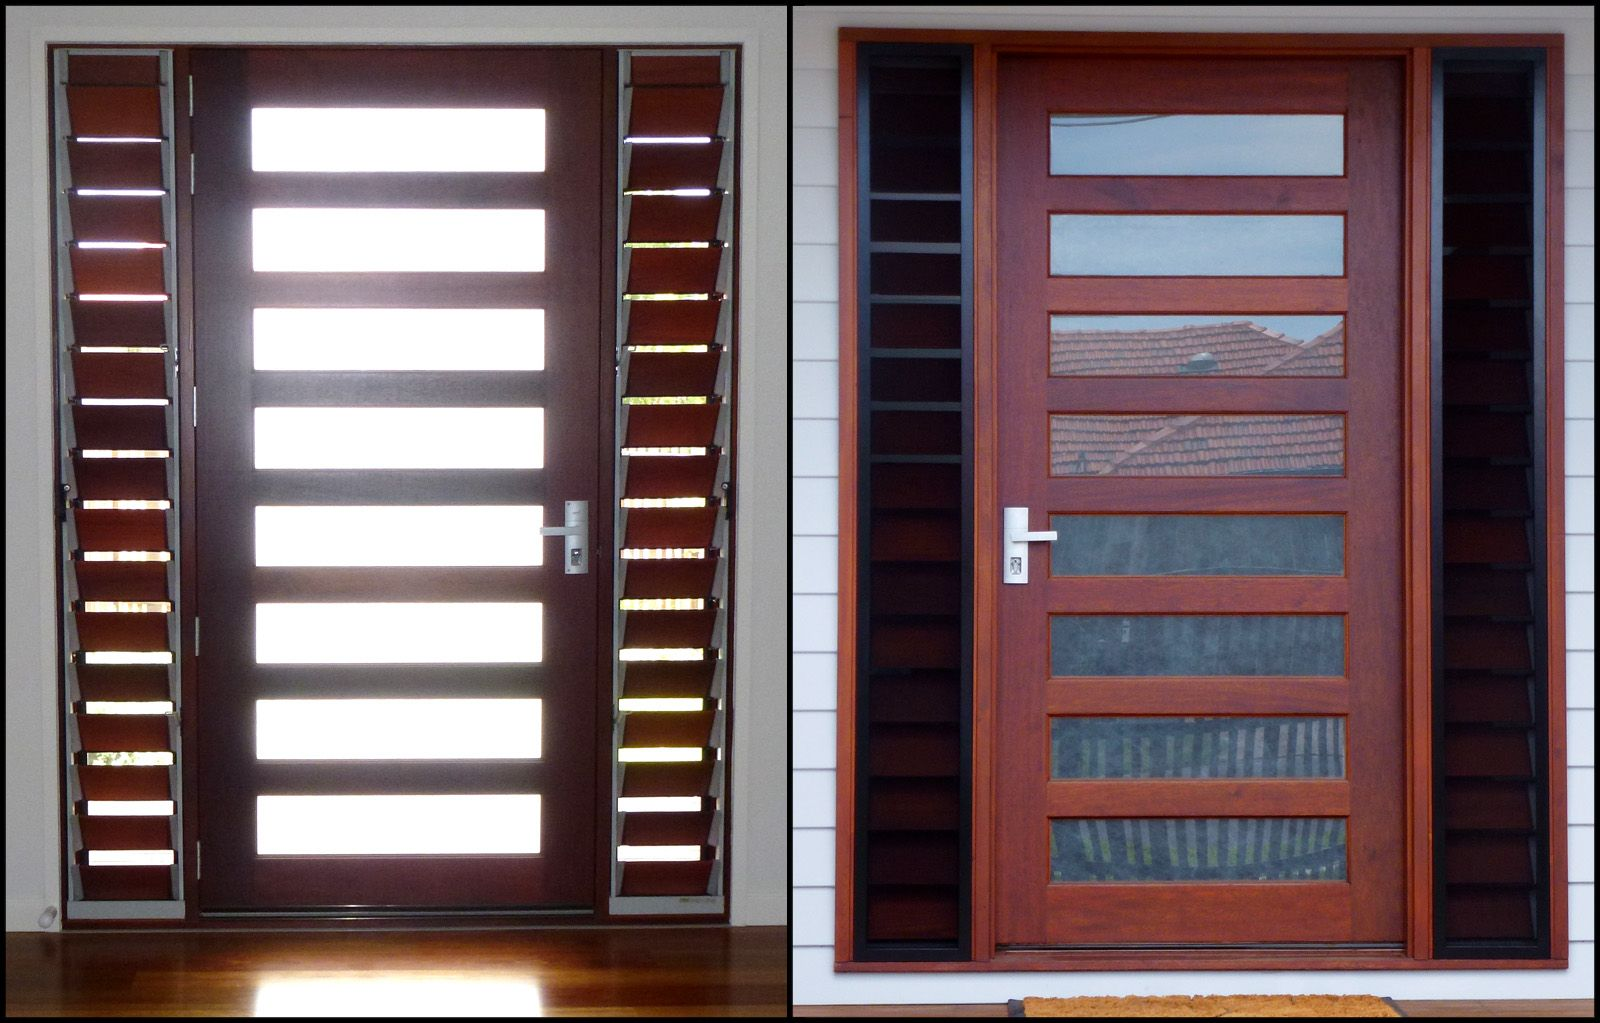 Front Door With Louvres On At Least One Side For Air Flow Through Crimsafe Screen Or Equivalent Timber Front Door Louvre Windows Front Door